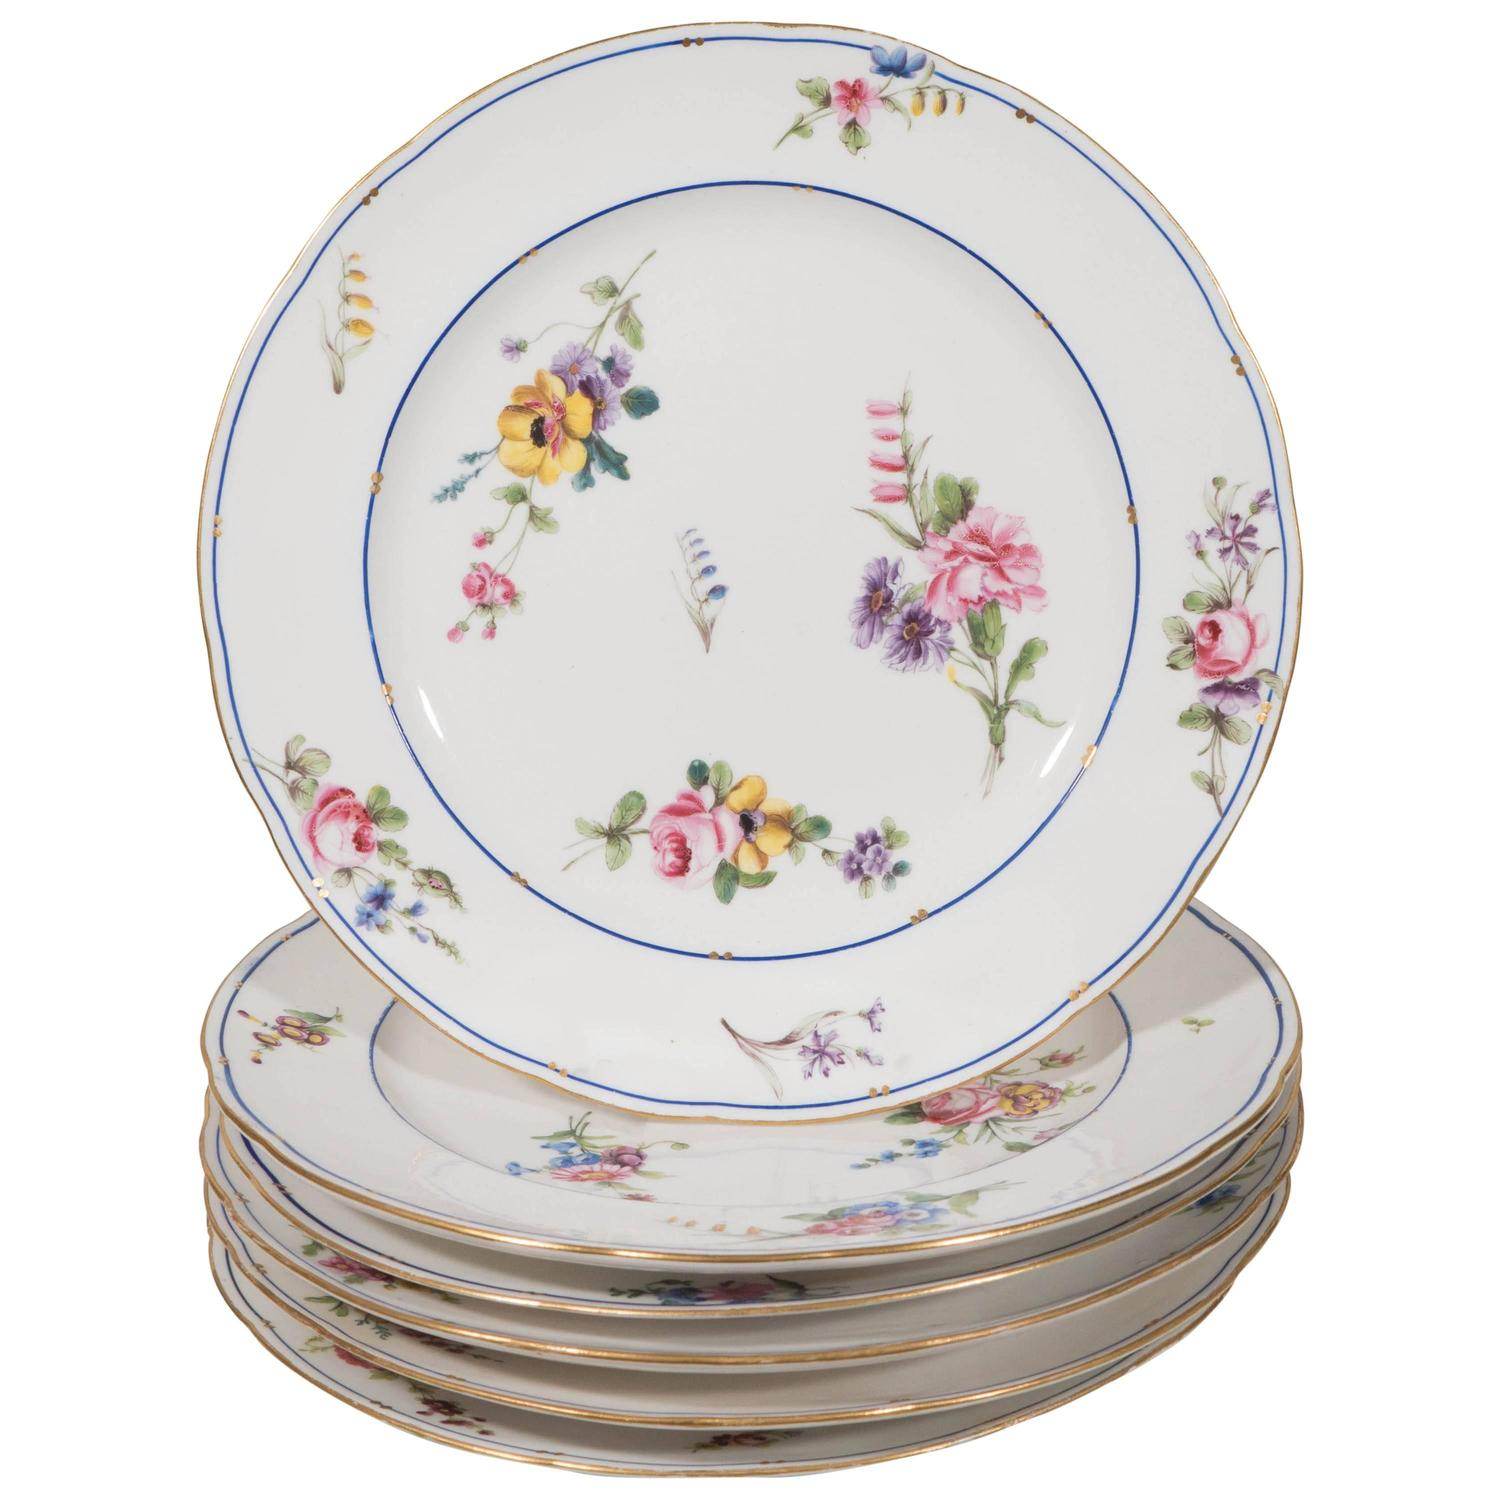 Sèvres dinner dishes, ca. 1785